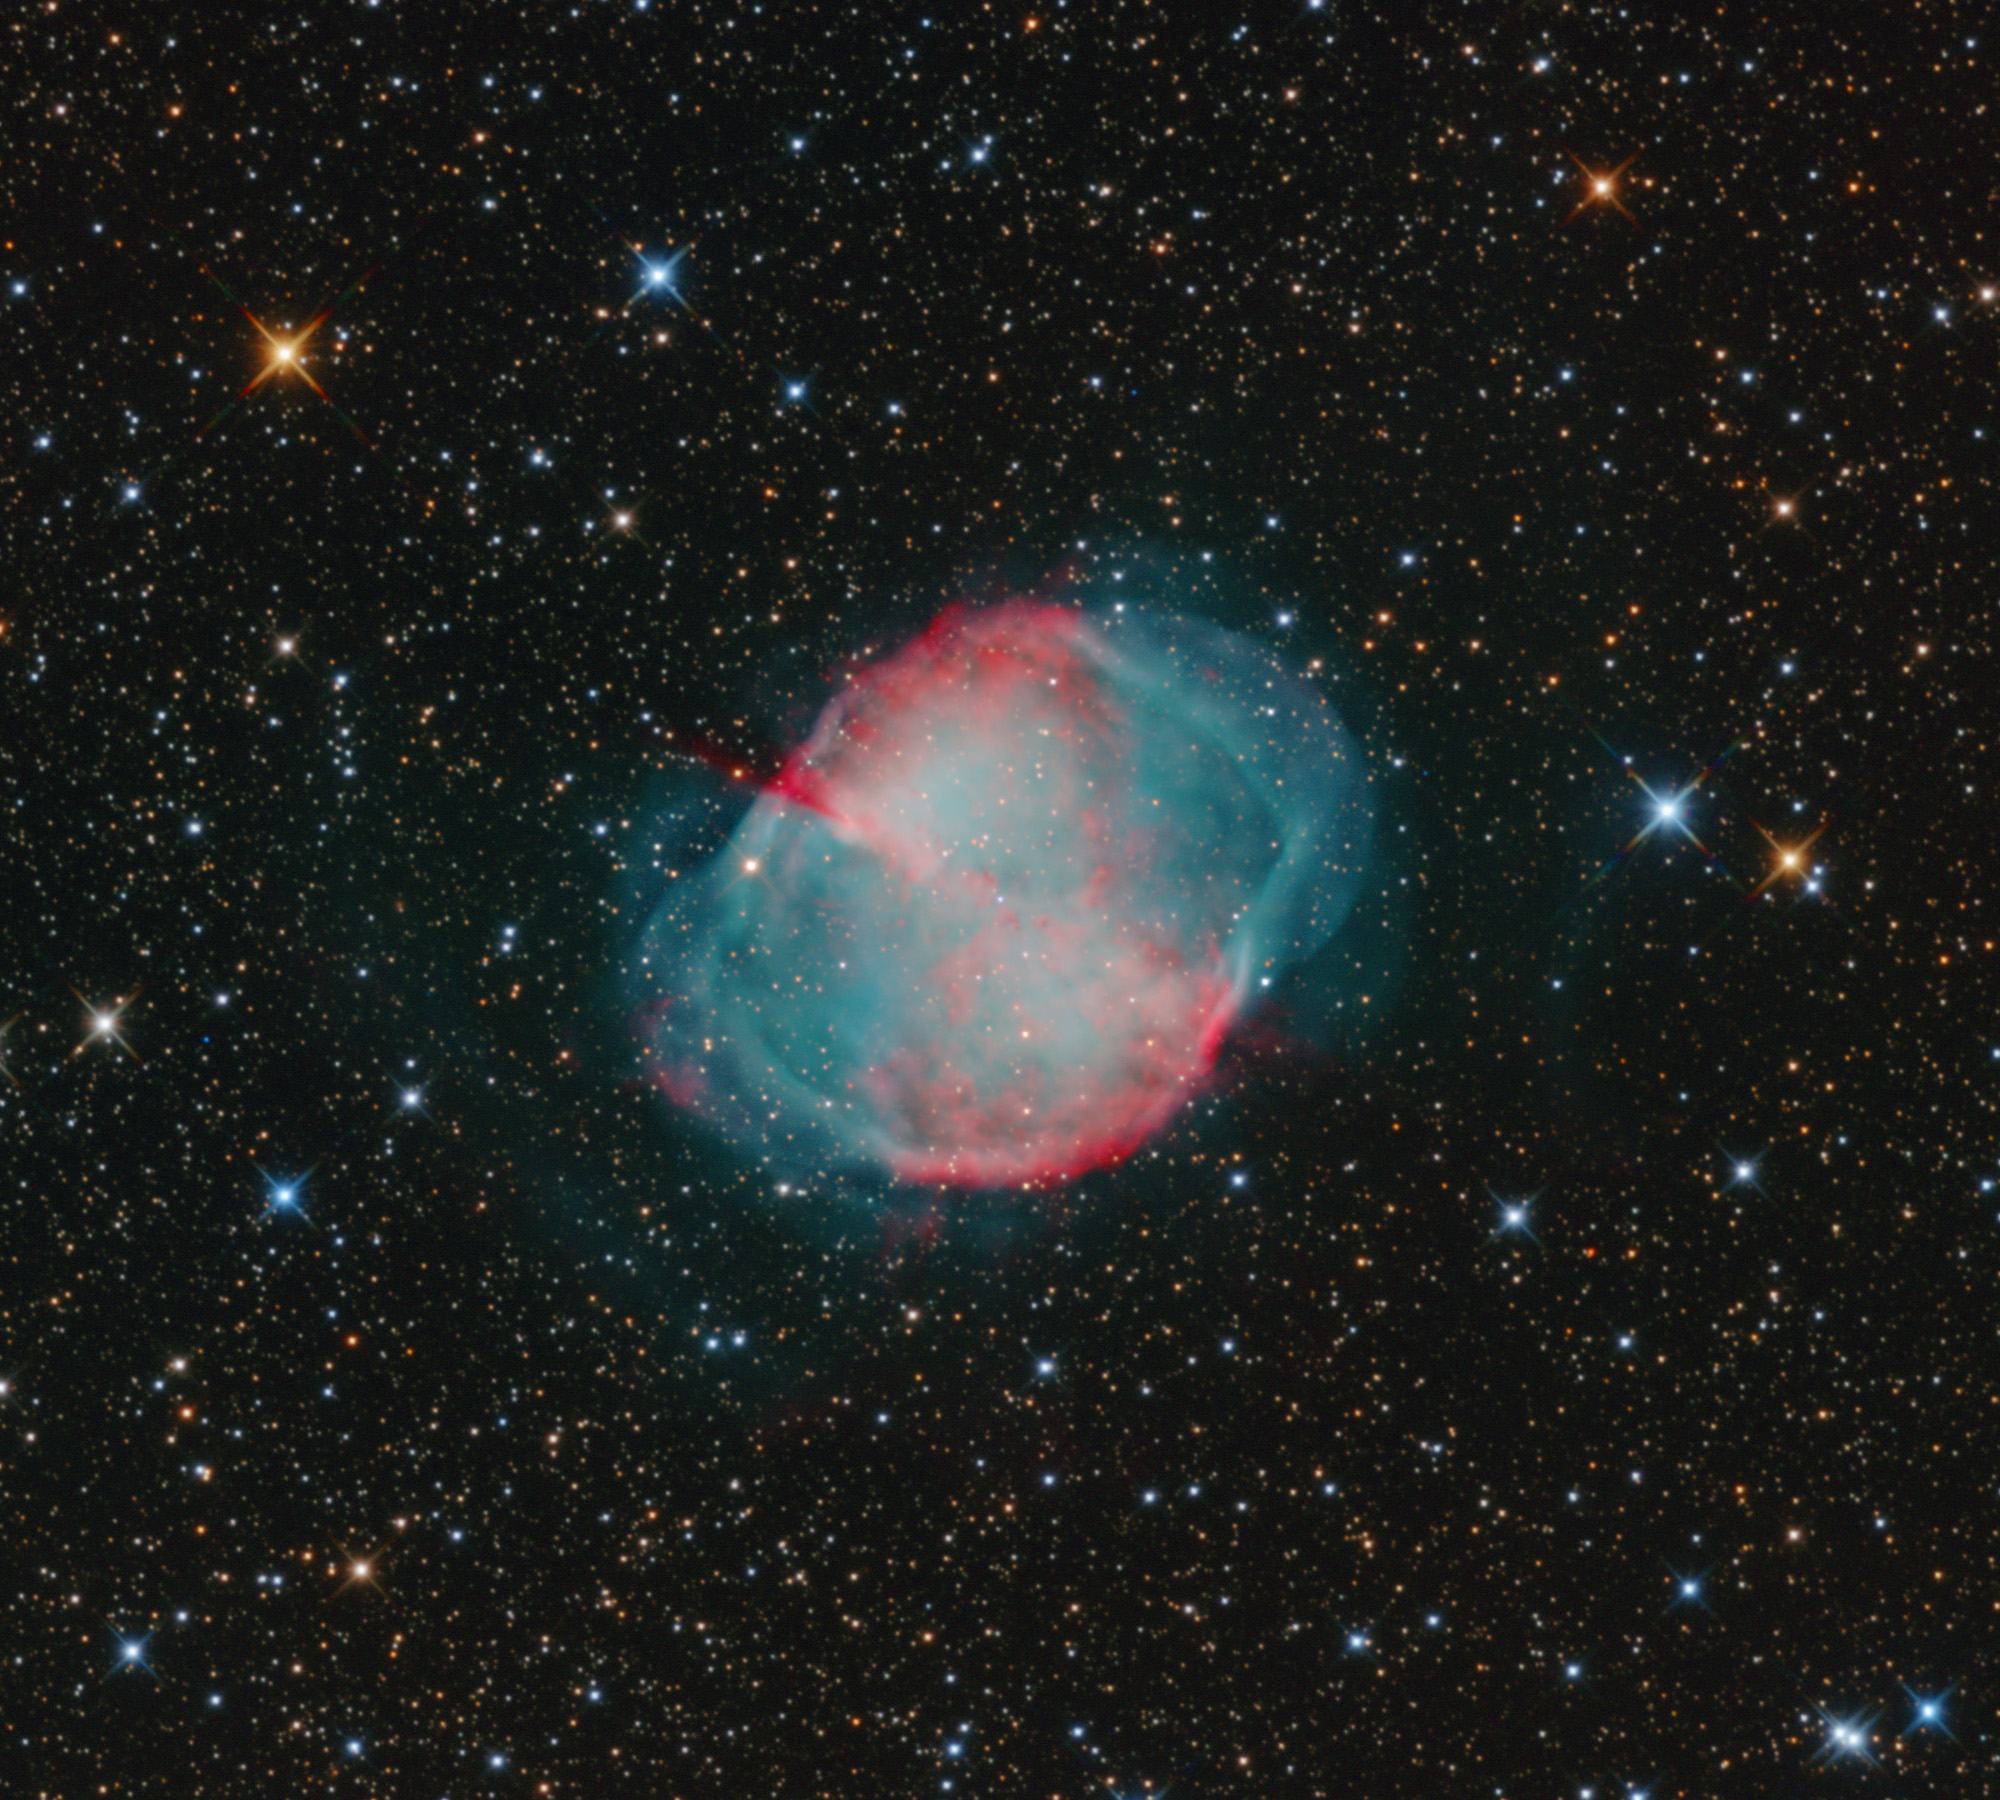 M27 - The Dumbbell Nebula in Vulpecula